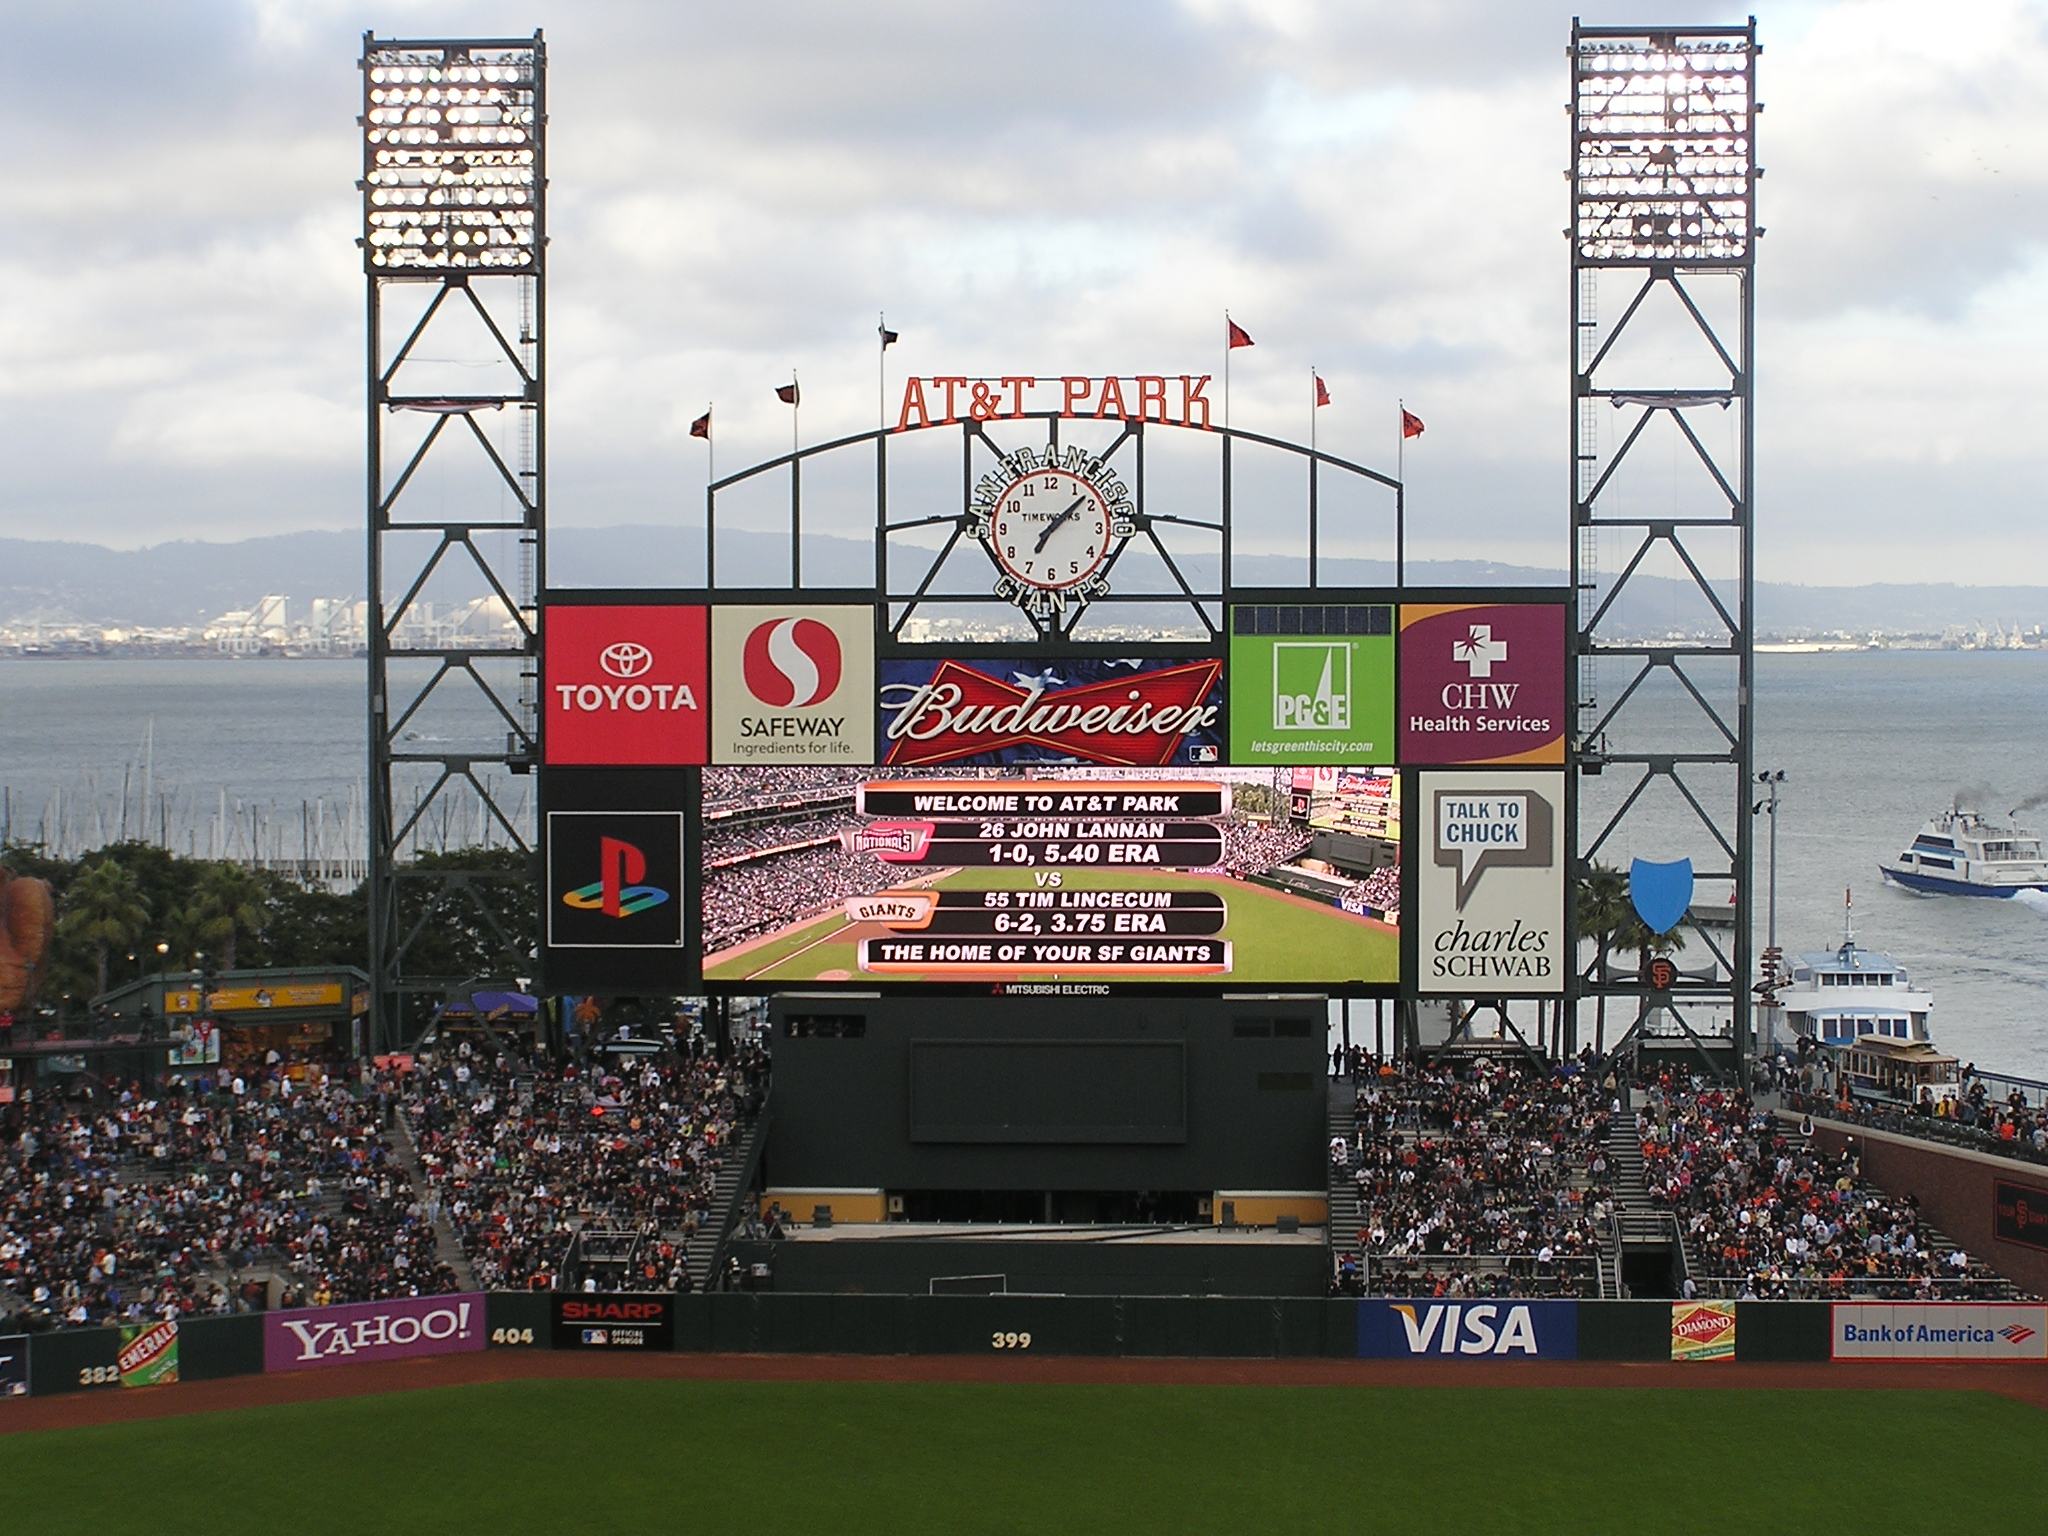 A beautiful scoreboard - AT&T Park, San Francisco